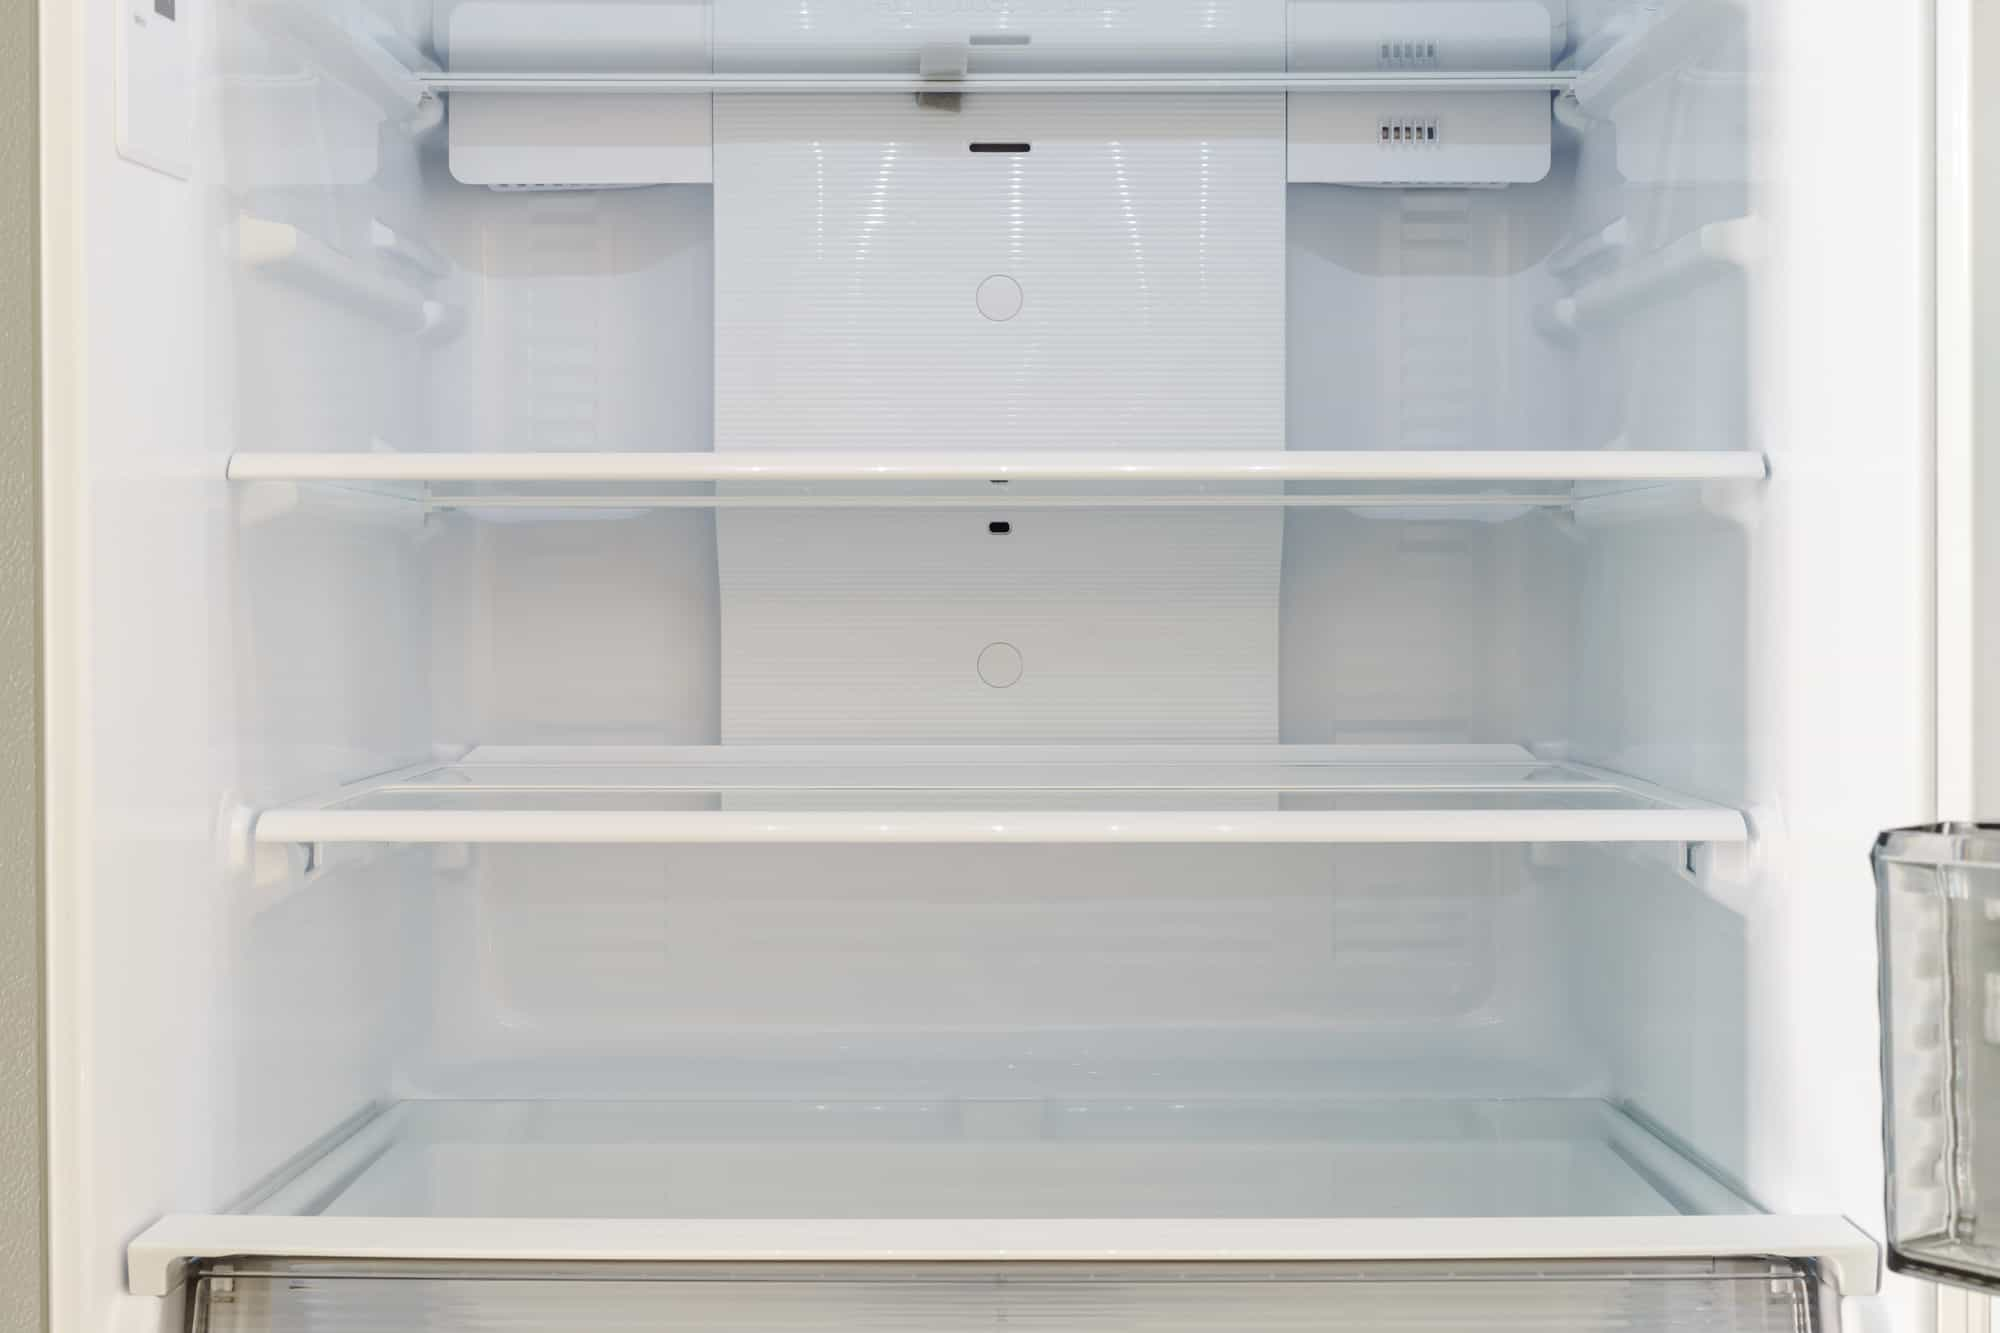 What To Consider When Buying An Upright Freezer